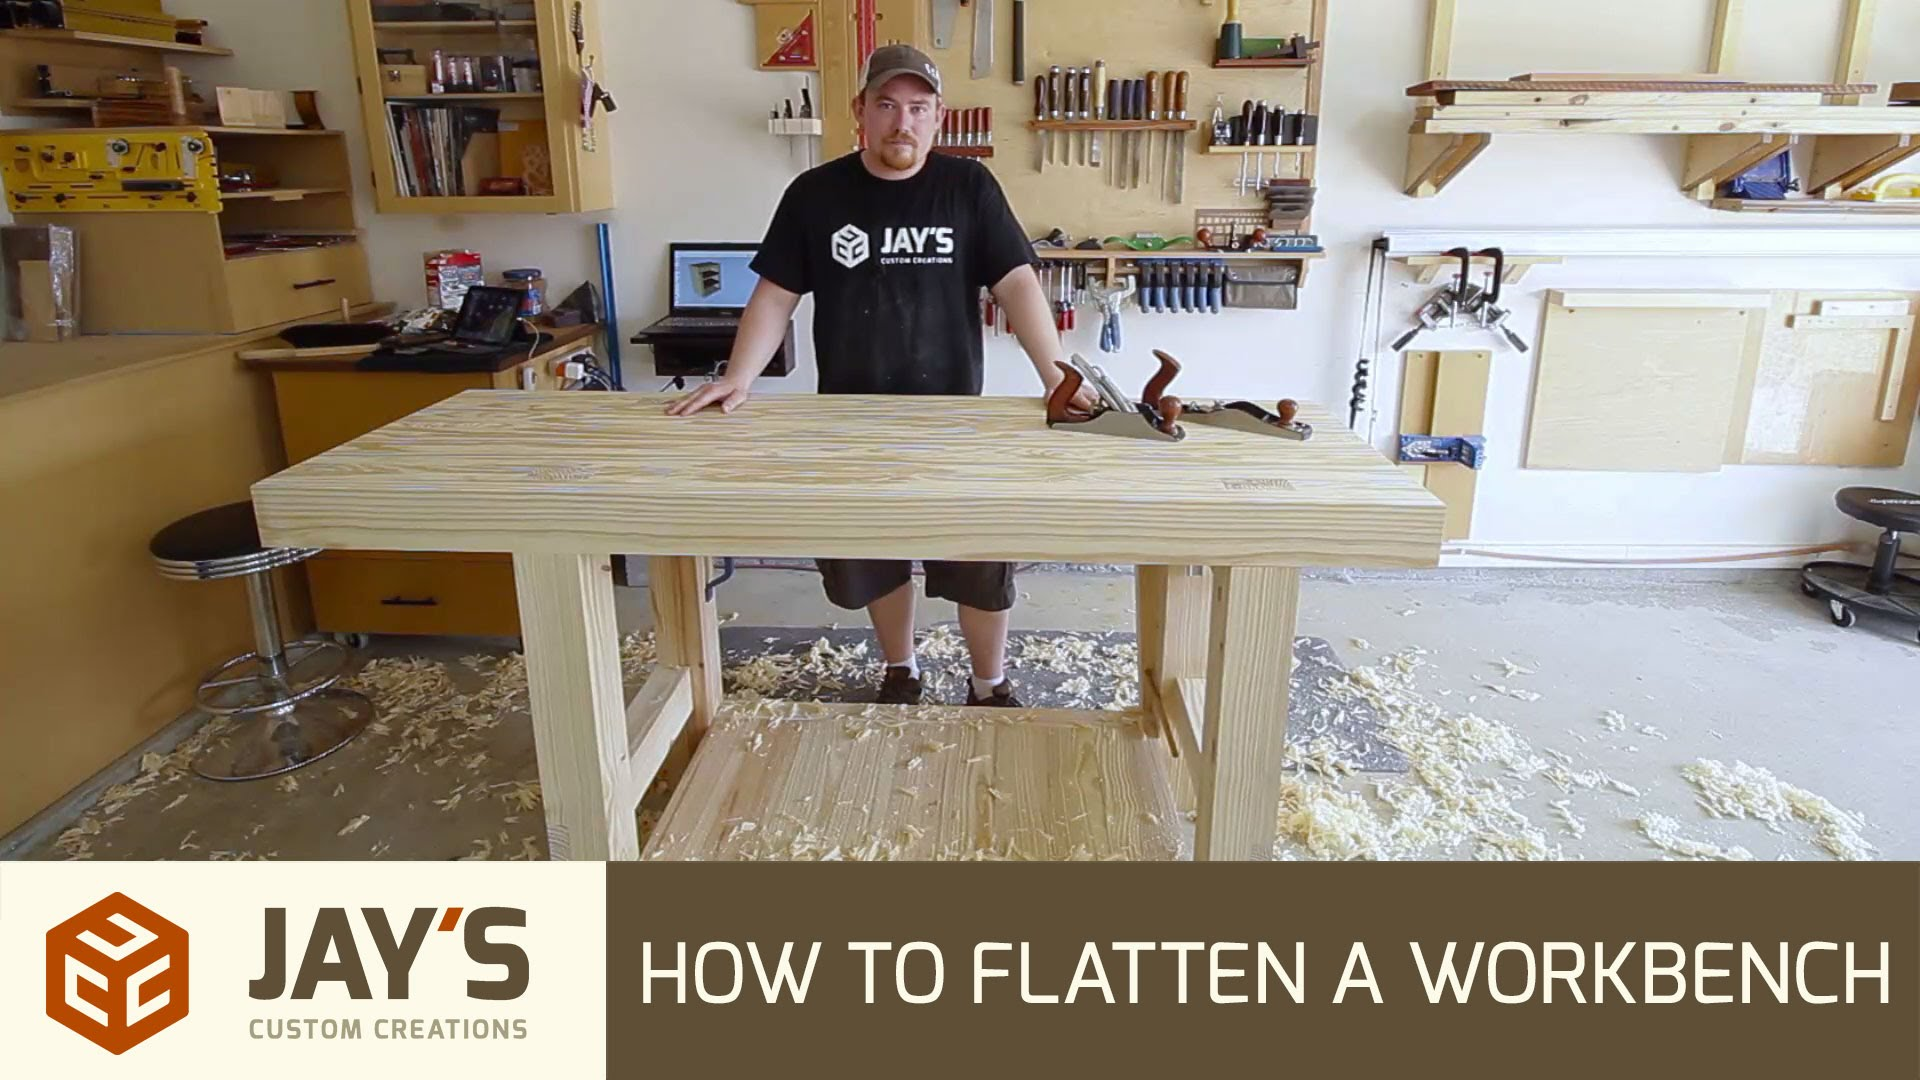 Sensational How To Flatten A Workbench Top With Hand Planes Jays Ibusinesslaw Wood Chair Design Ideas Ibusinesslaworg